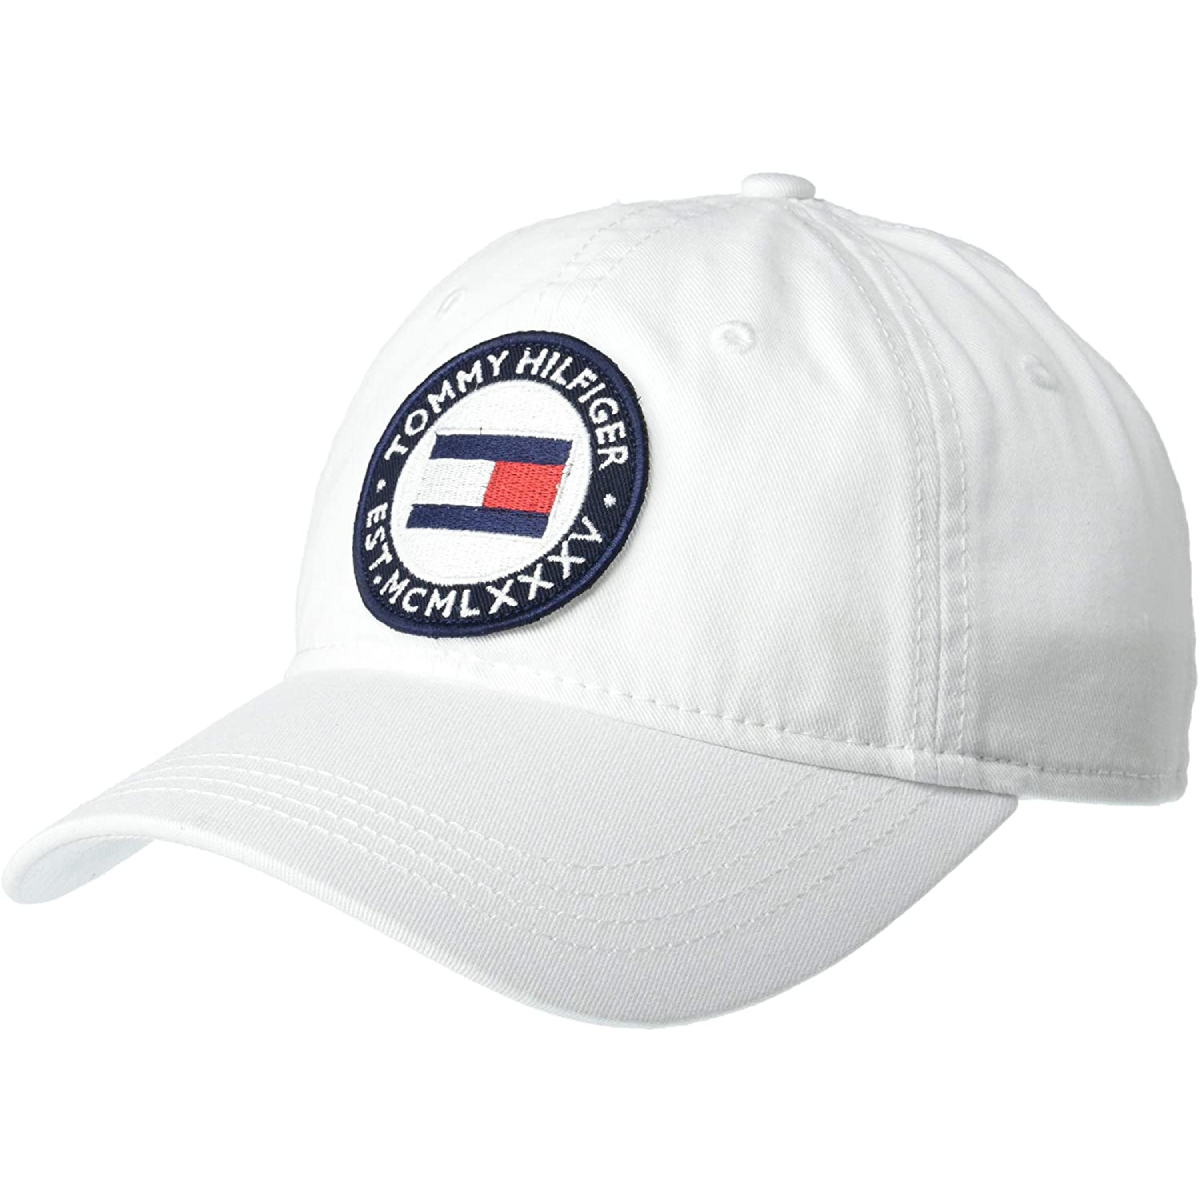 non-tommy-hilfiger-72